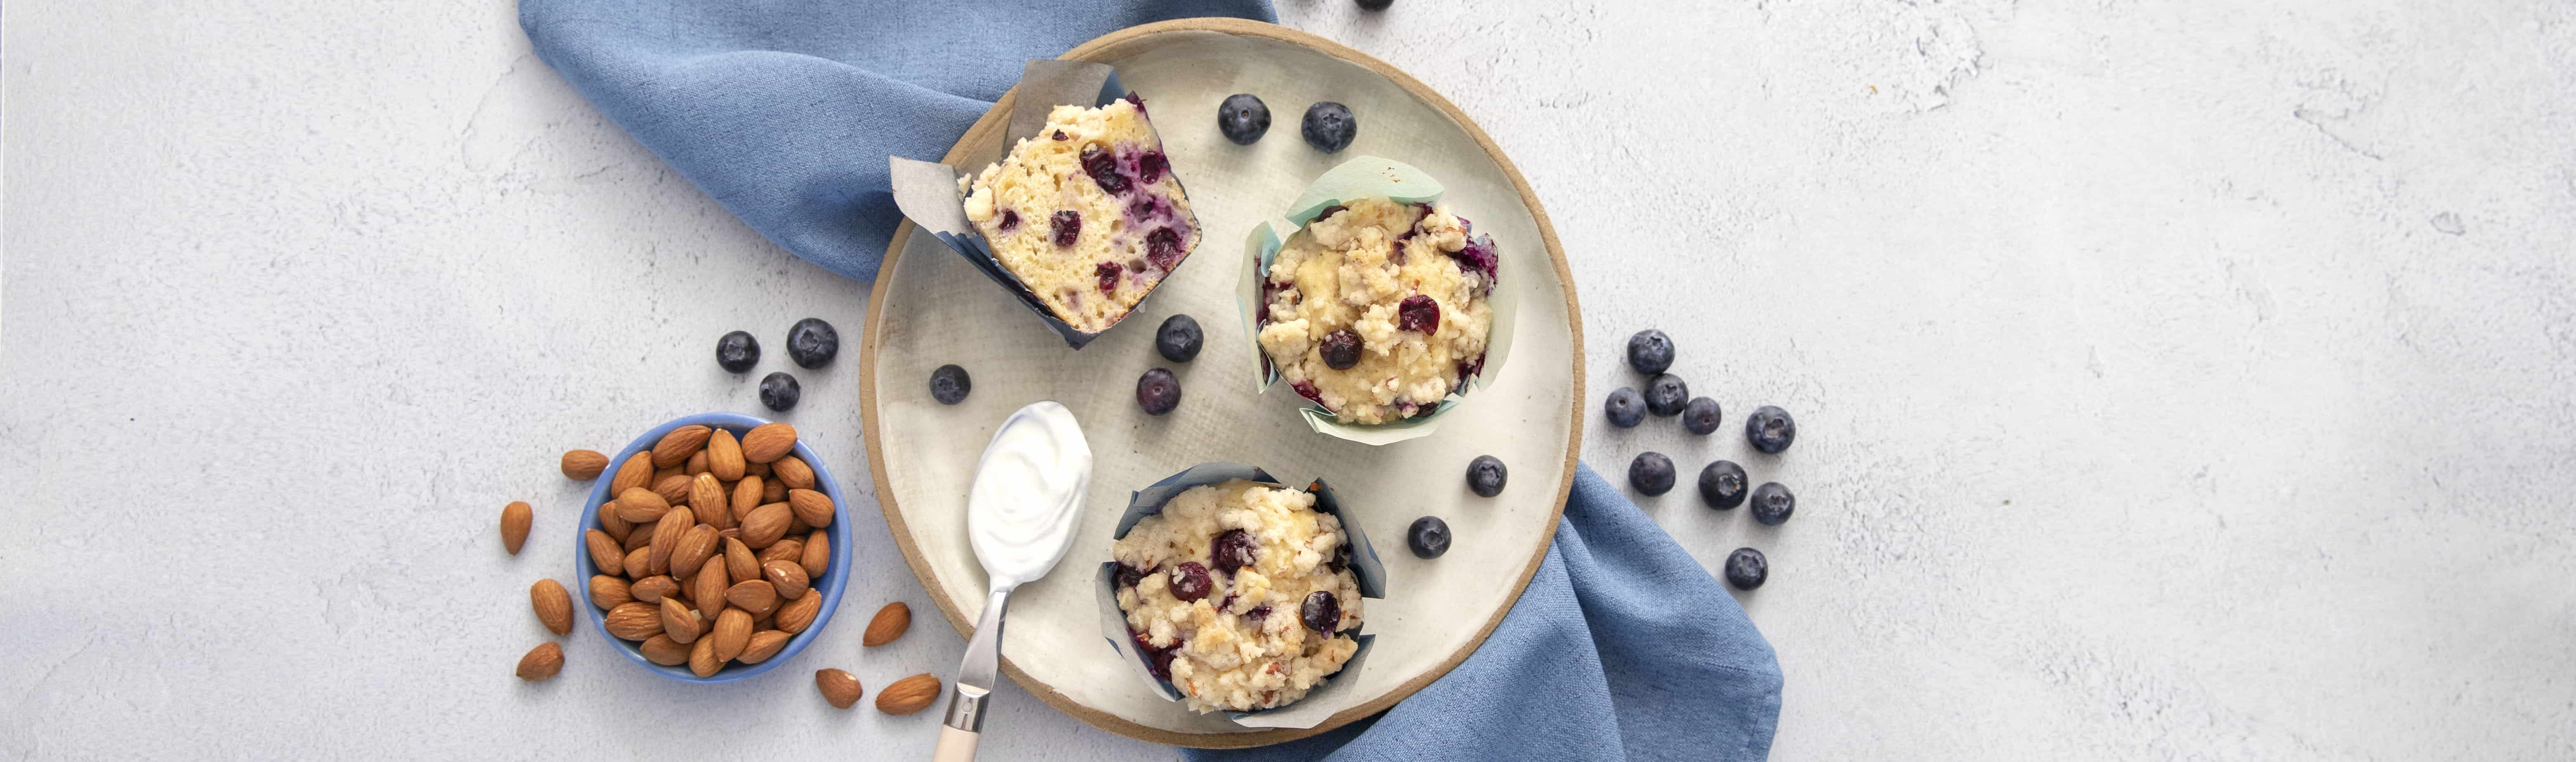 Blueberry Almond Streusel Muffins